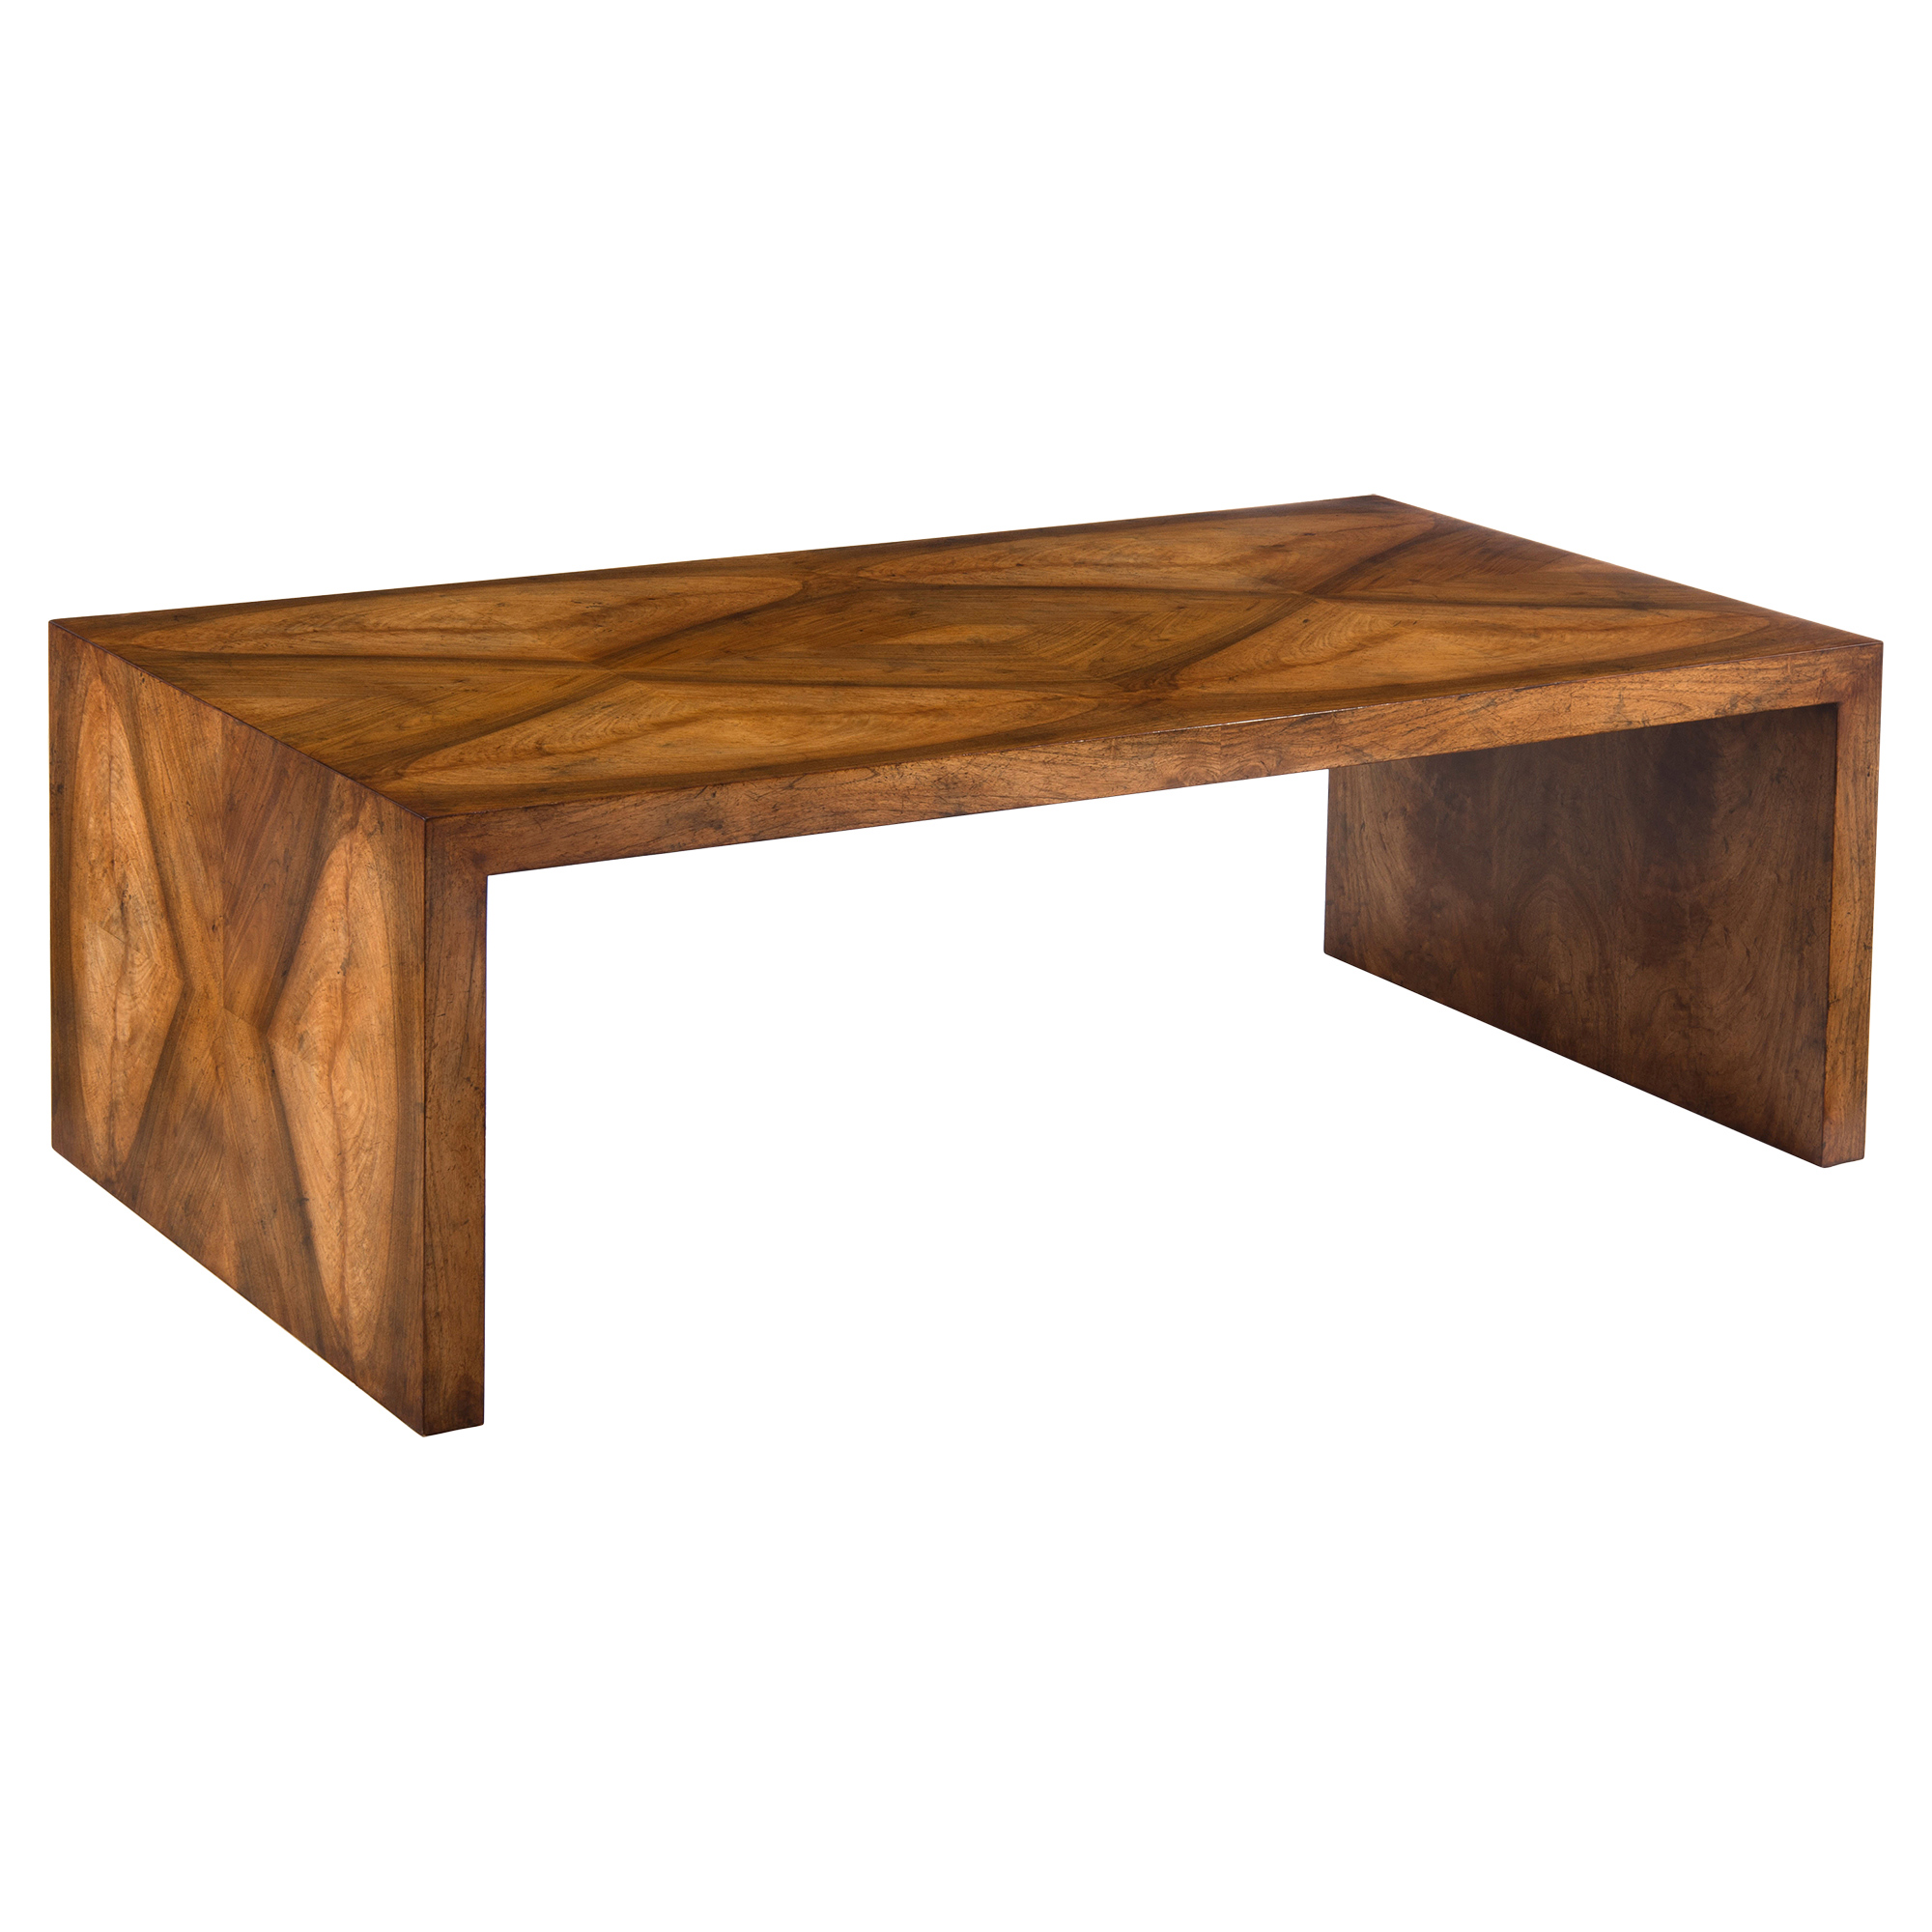 Janson Rustic Modern Veneer Waterfall Coffee Table